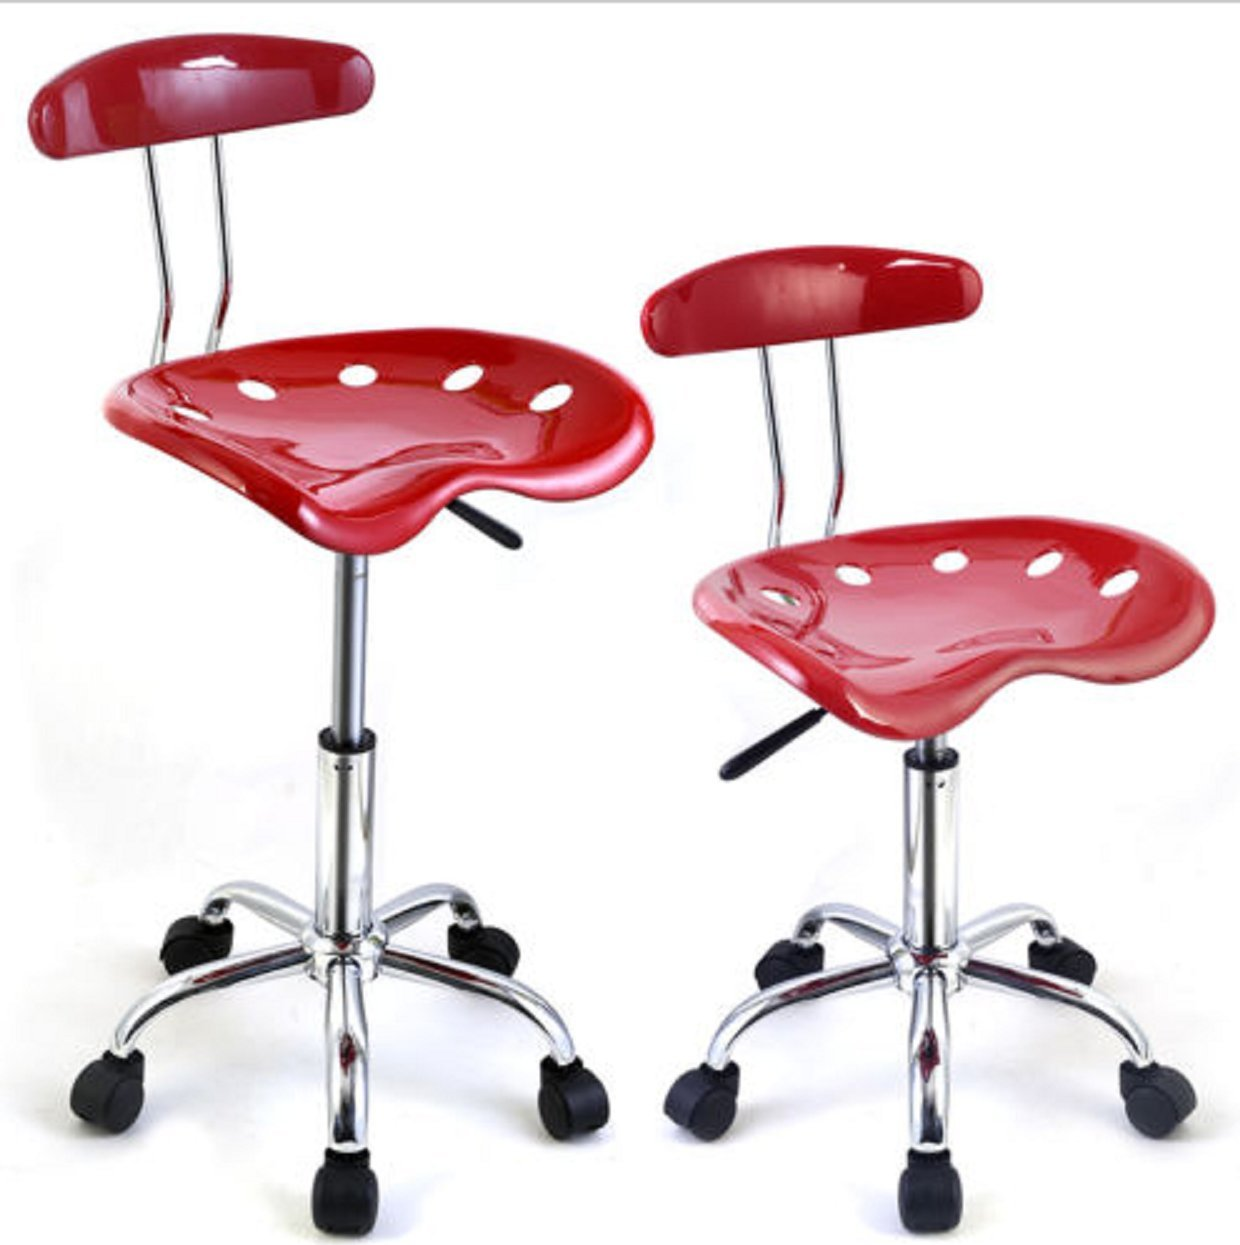 Design Tractor Seat Stool amazon com adjustable bar stools abs tractor seat swivel kitchen chrome drafting modern chair 1pc breakfast red dinin